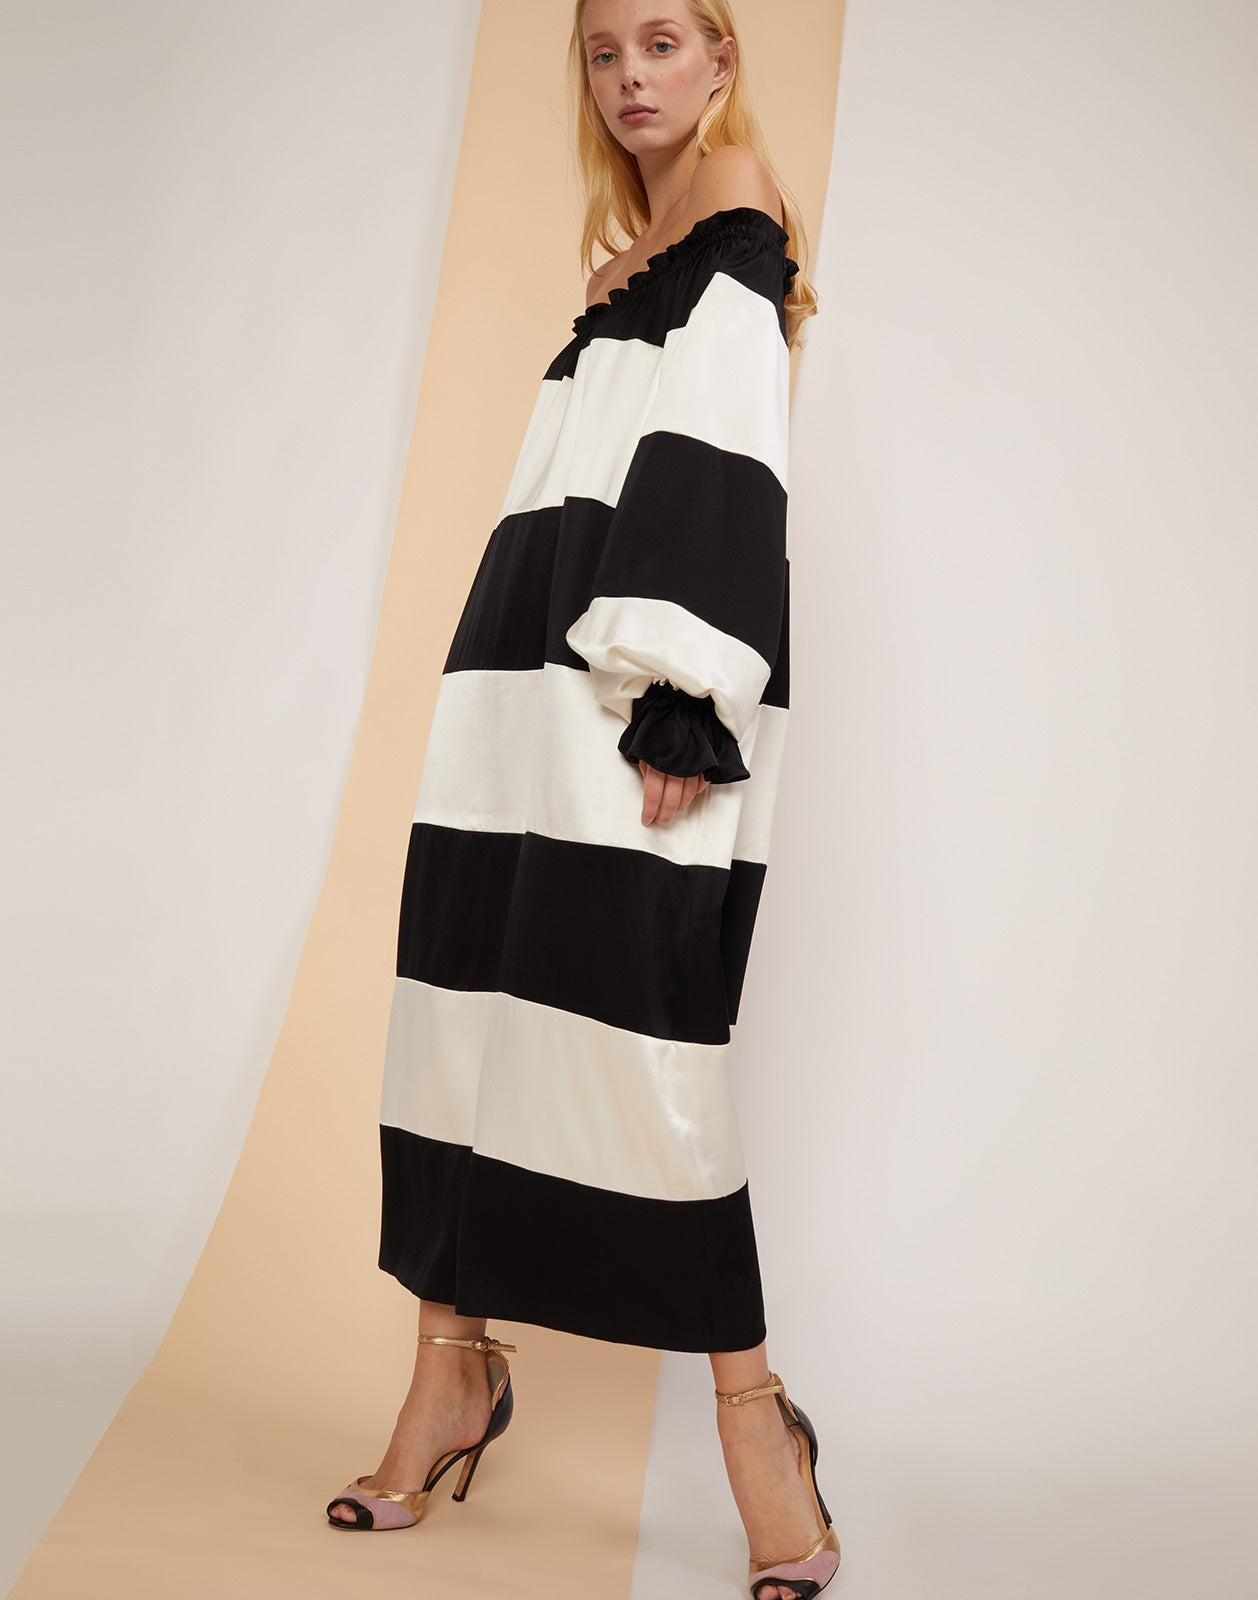 Three quarter view of the Shanley off shoulder black and white striped dress.